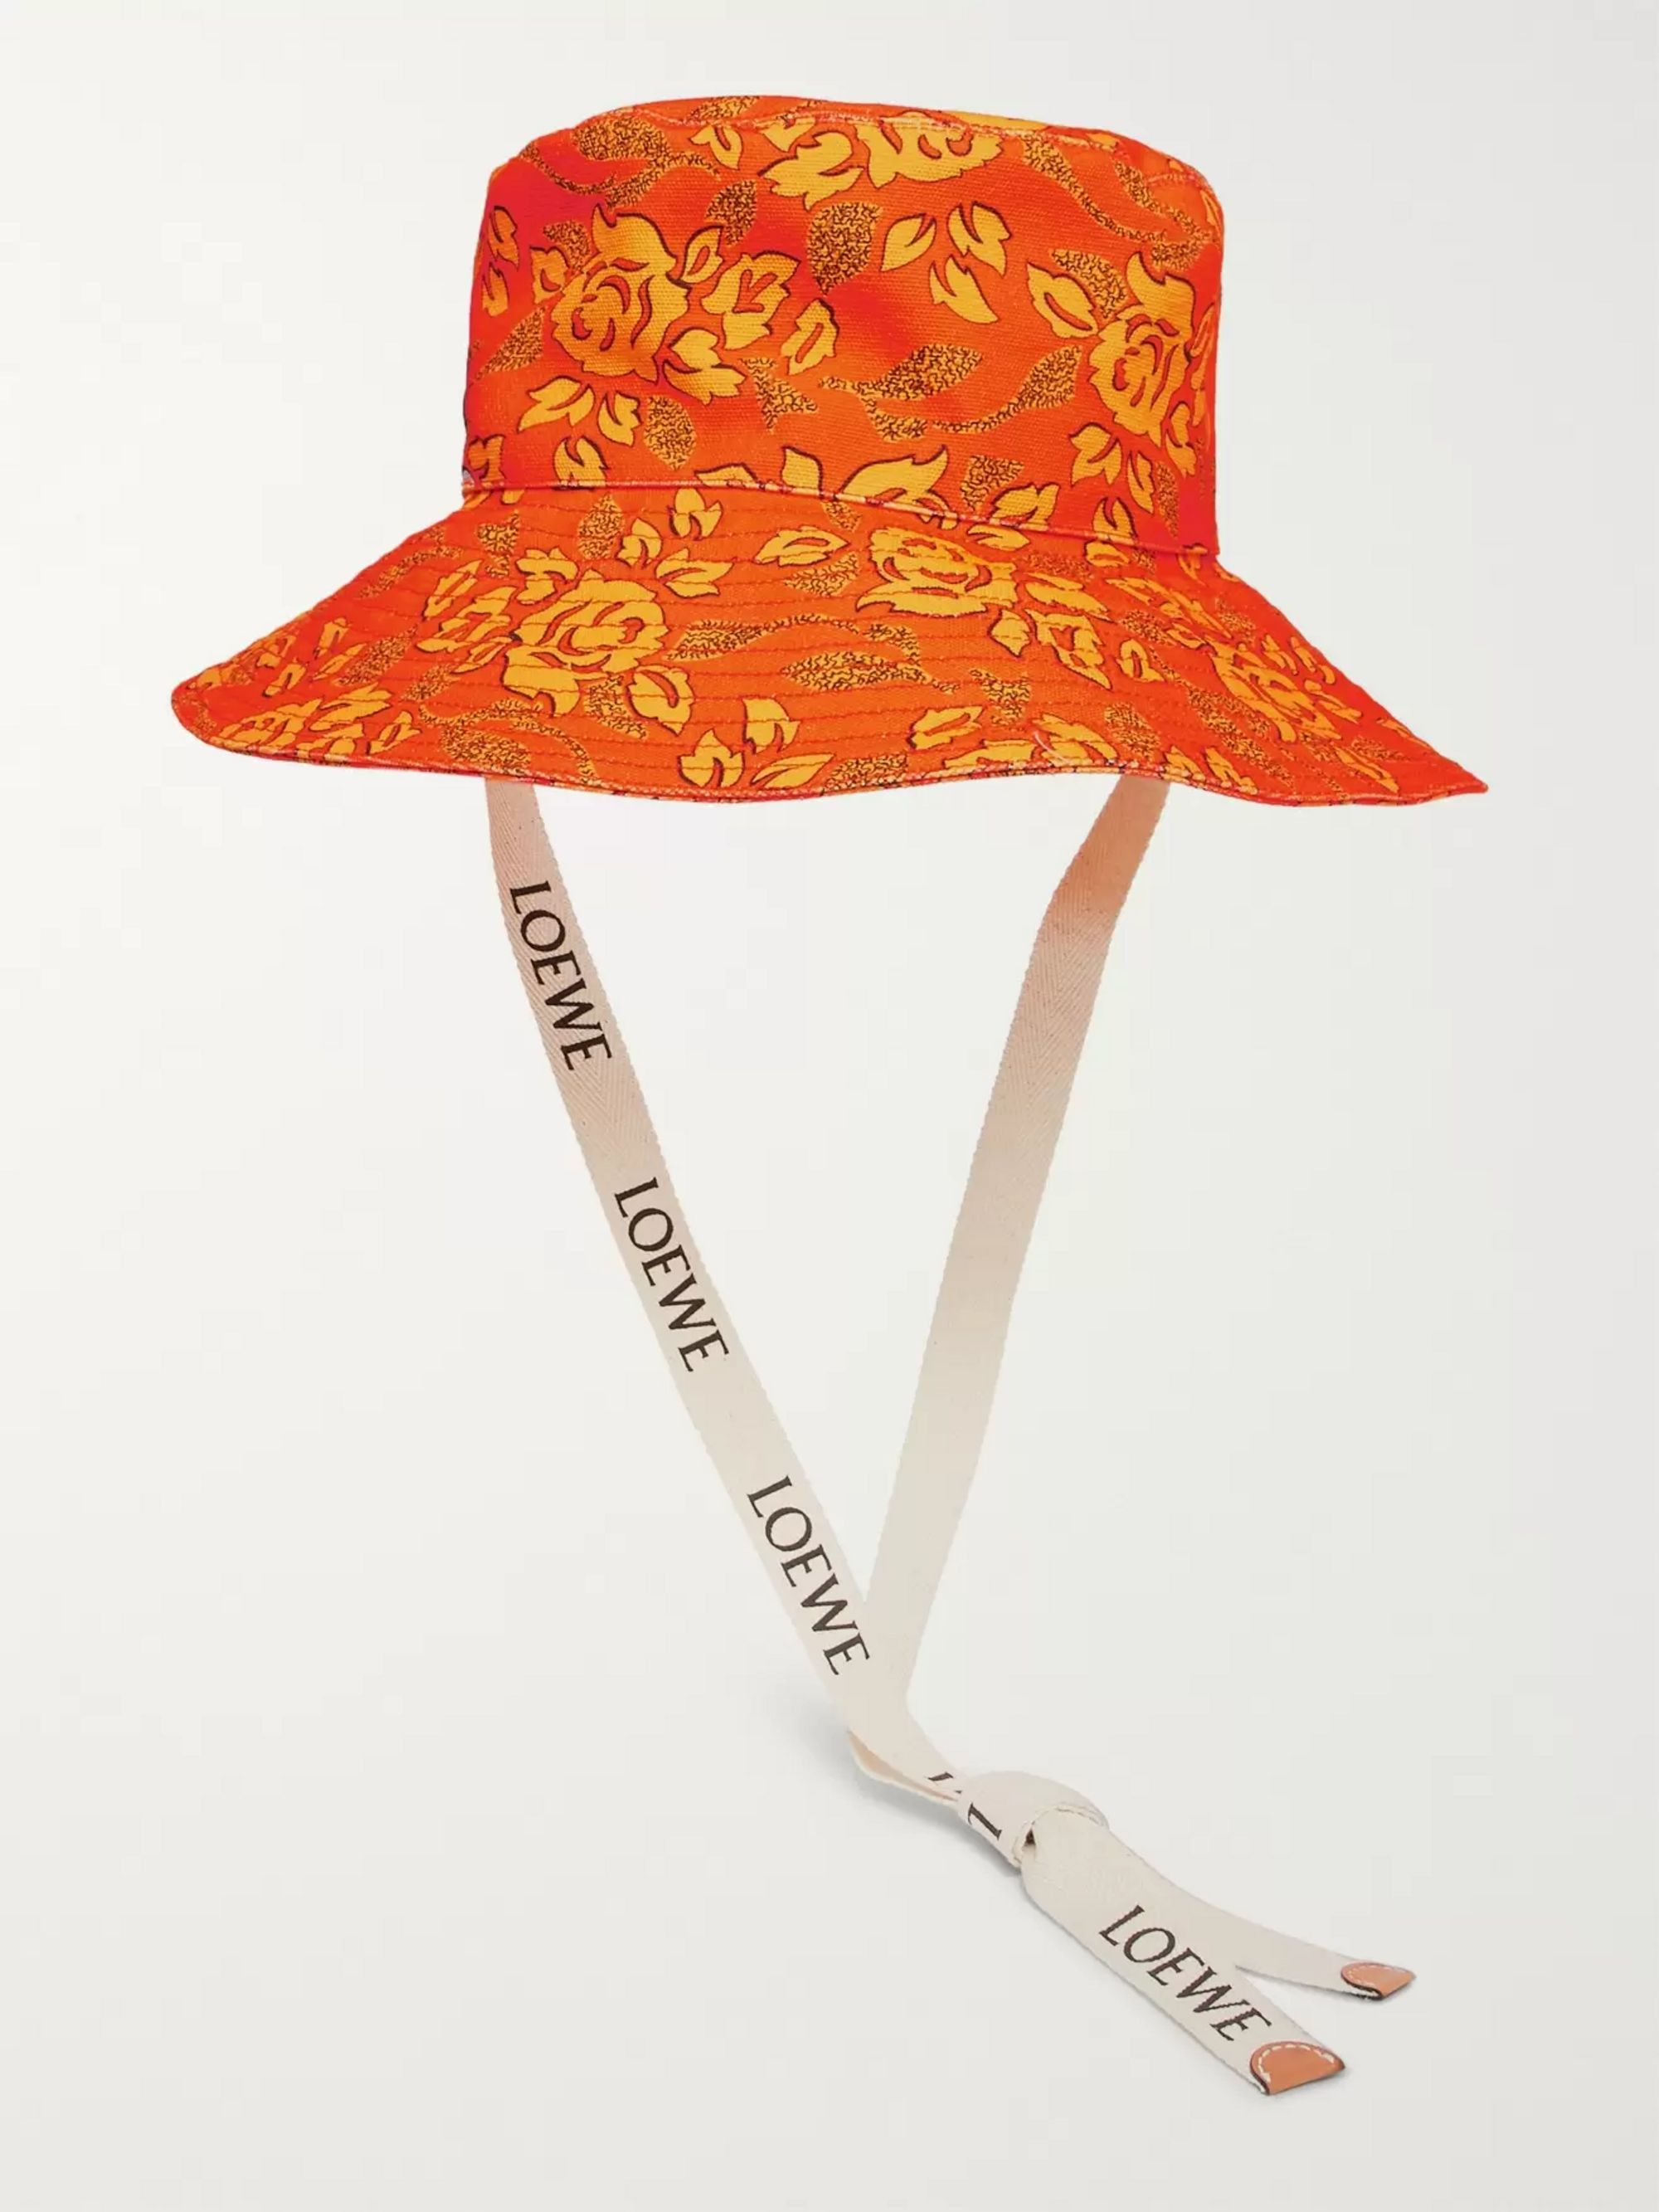 Loewe + Paula's Ibiza Leather-Appliquéd Printed Cotton-Canvas Bucket Hat